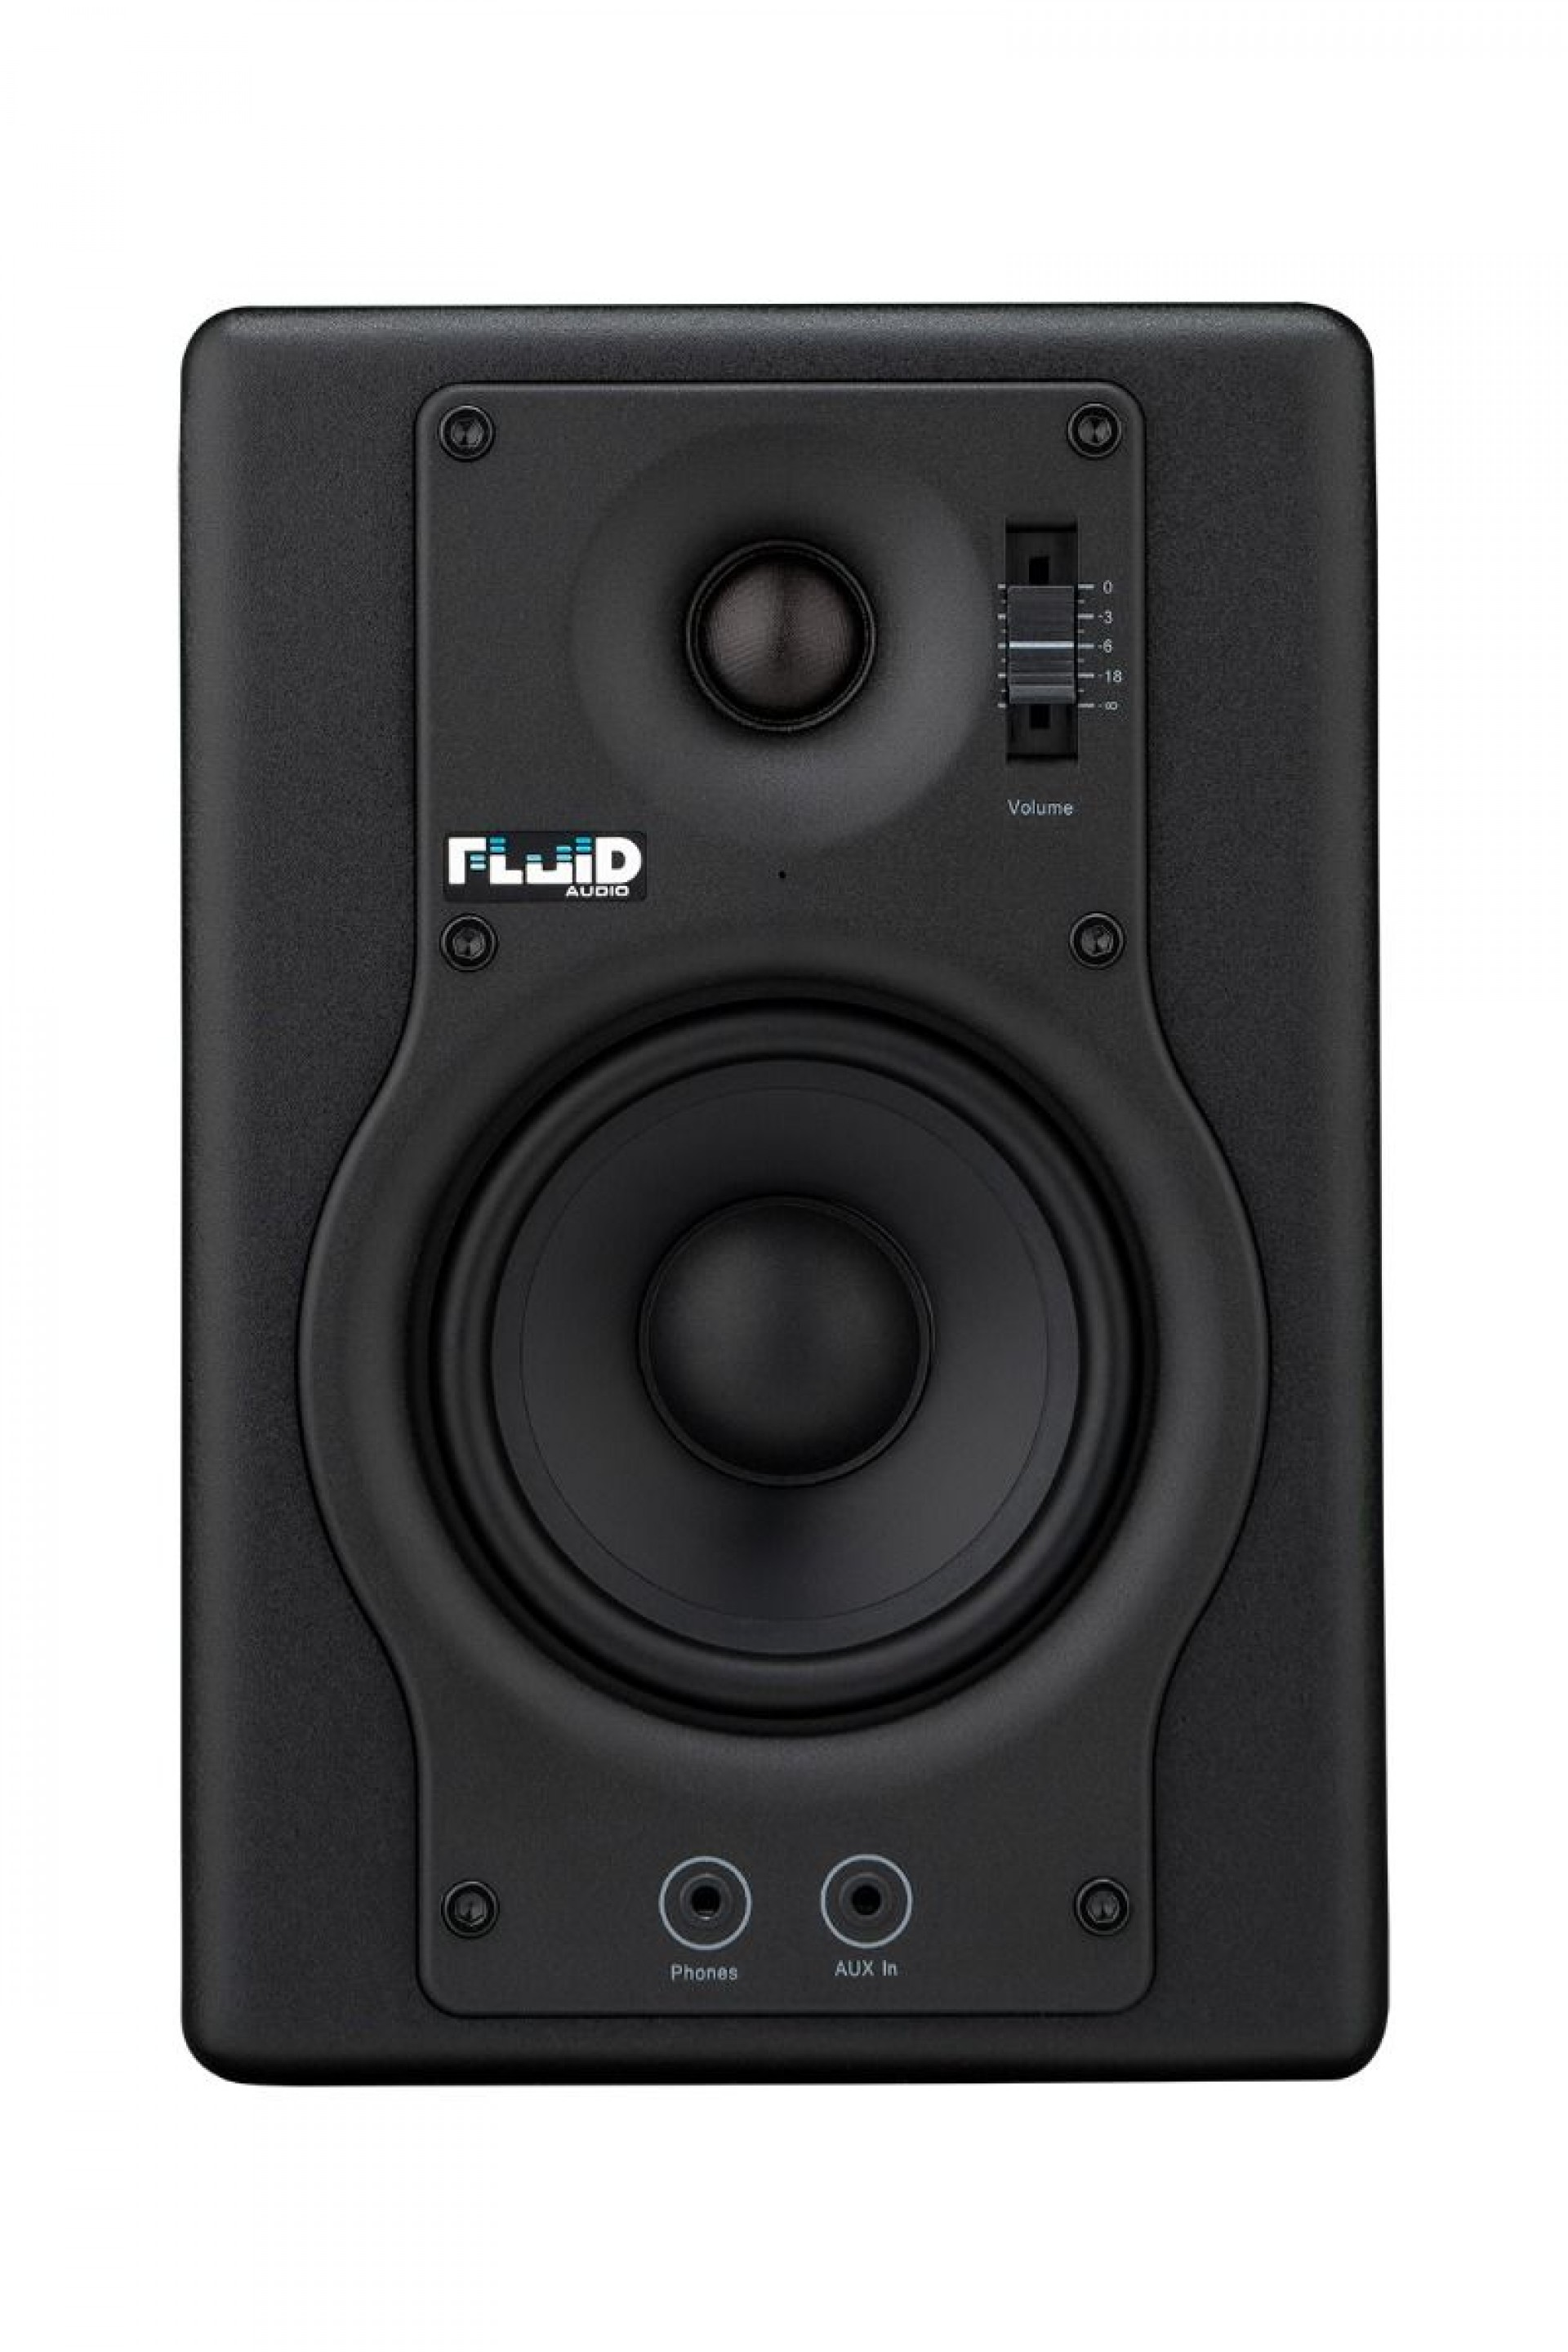 Fluid Audio F4